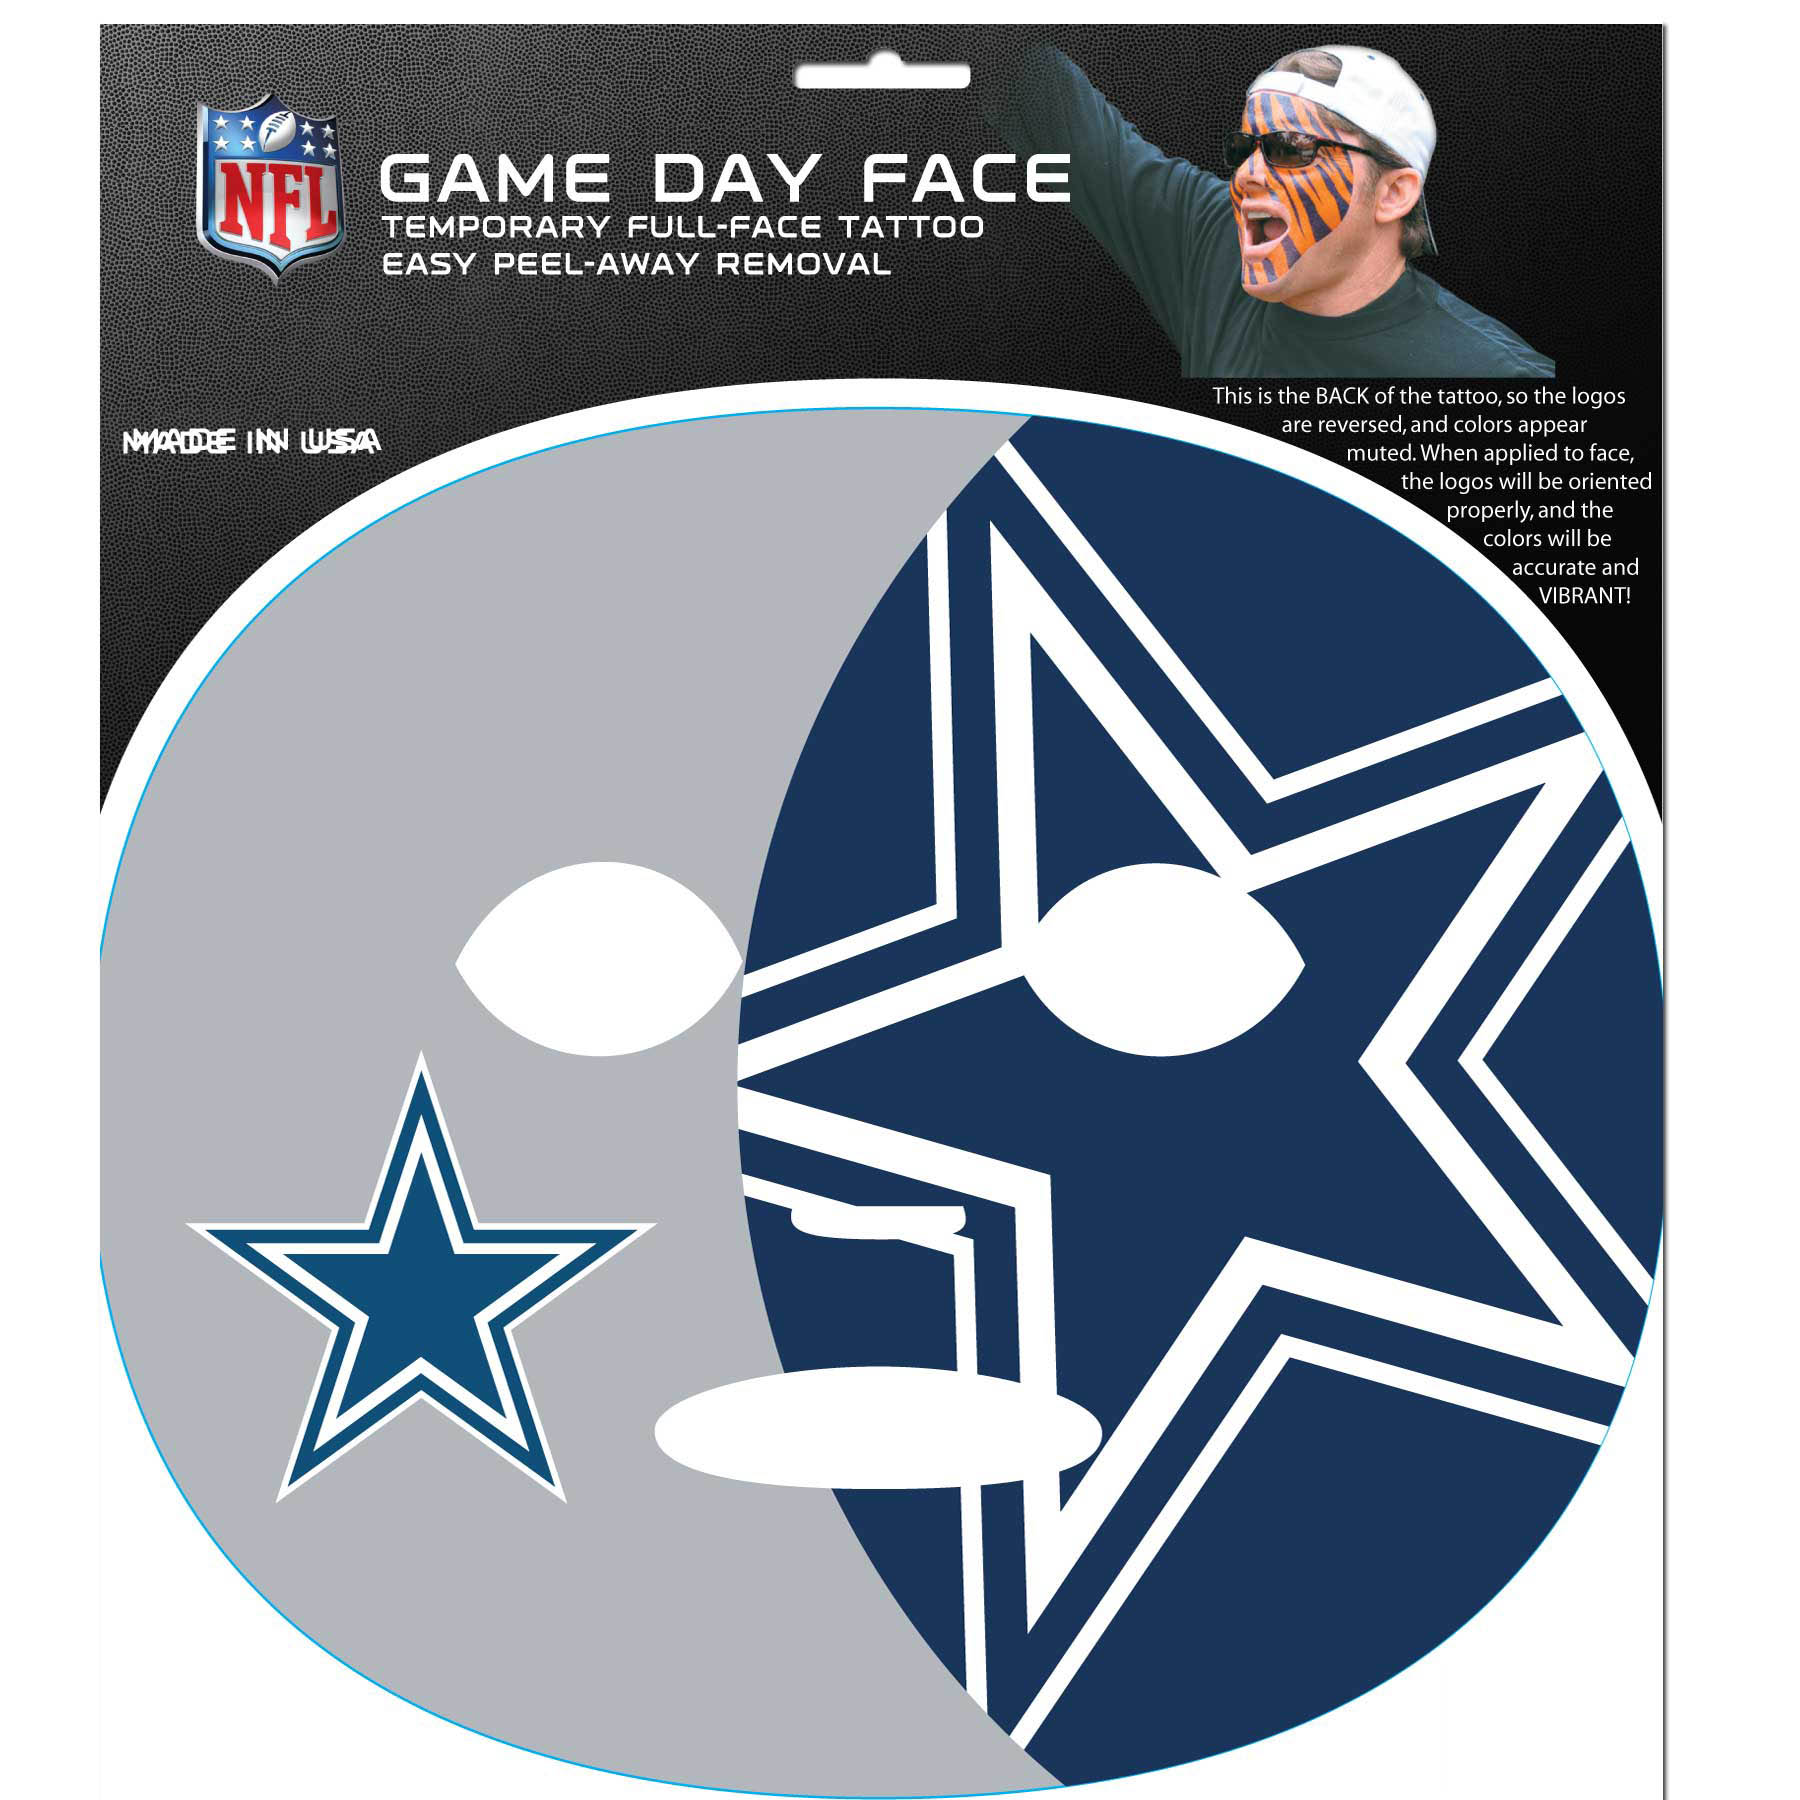 Dallas Cowboys Set of 4 Game Day Faces - No better way to show your team pride than by painting your face. Siskiyou's Game Day Face Temporary Tattoo isn't your typical face paint. It is a water based application that doesn't smudge, smear or sweat off while you're wearing it and easily peels off after you're done celebrating your team's big Win! The temporary tattoo is large enough to trim down to fit your face. Our Game Day Face Temporary Tattoo's are fun for fans of all ages. You may have seen our product before, these are the same Temporary Face Tattoos as pitched on ABC's Shark Tank.